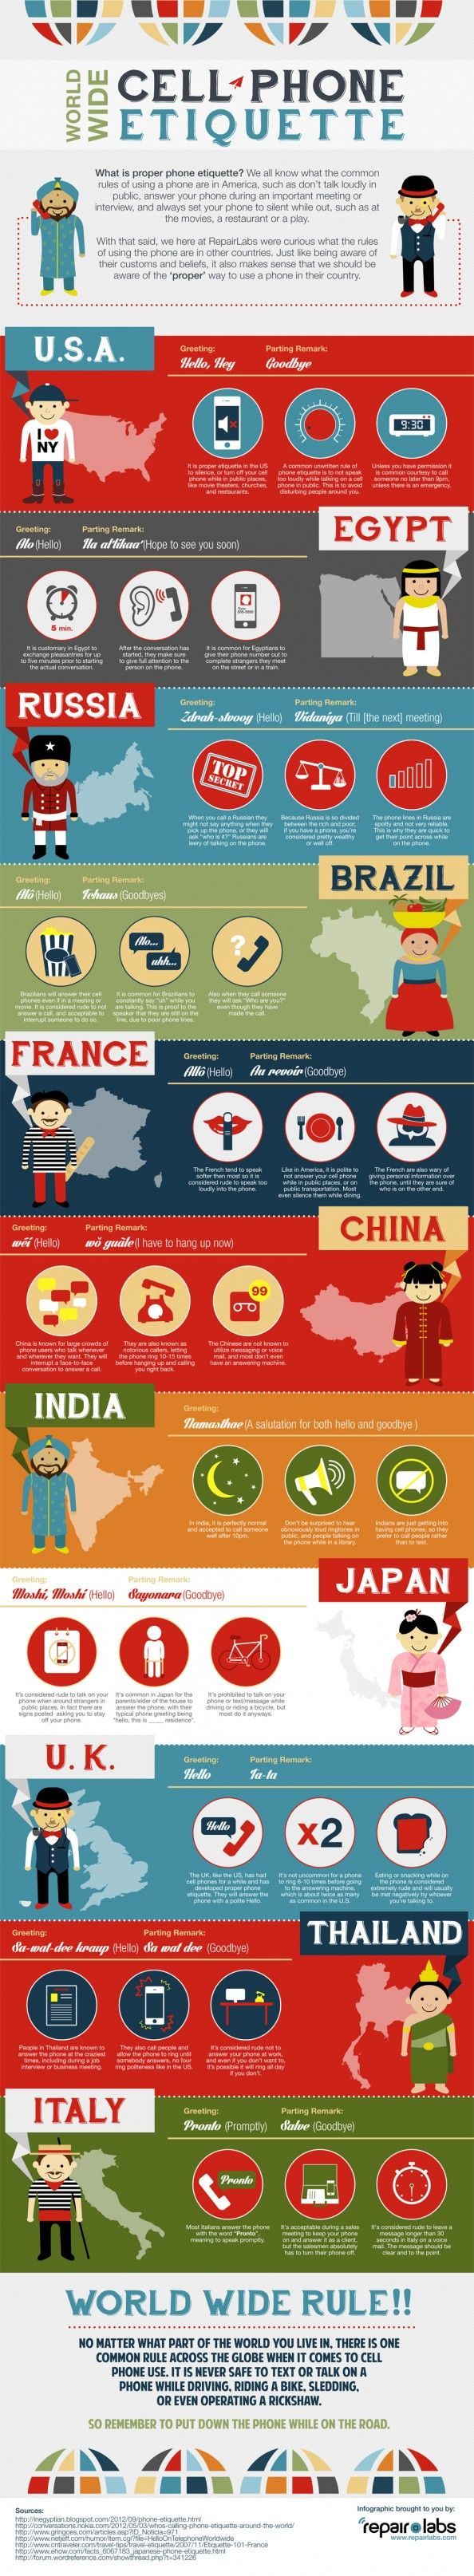 Phone Etiquette World Wide #Infographic